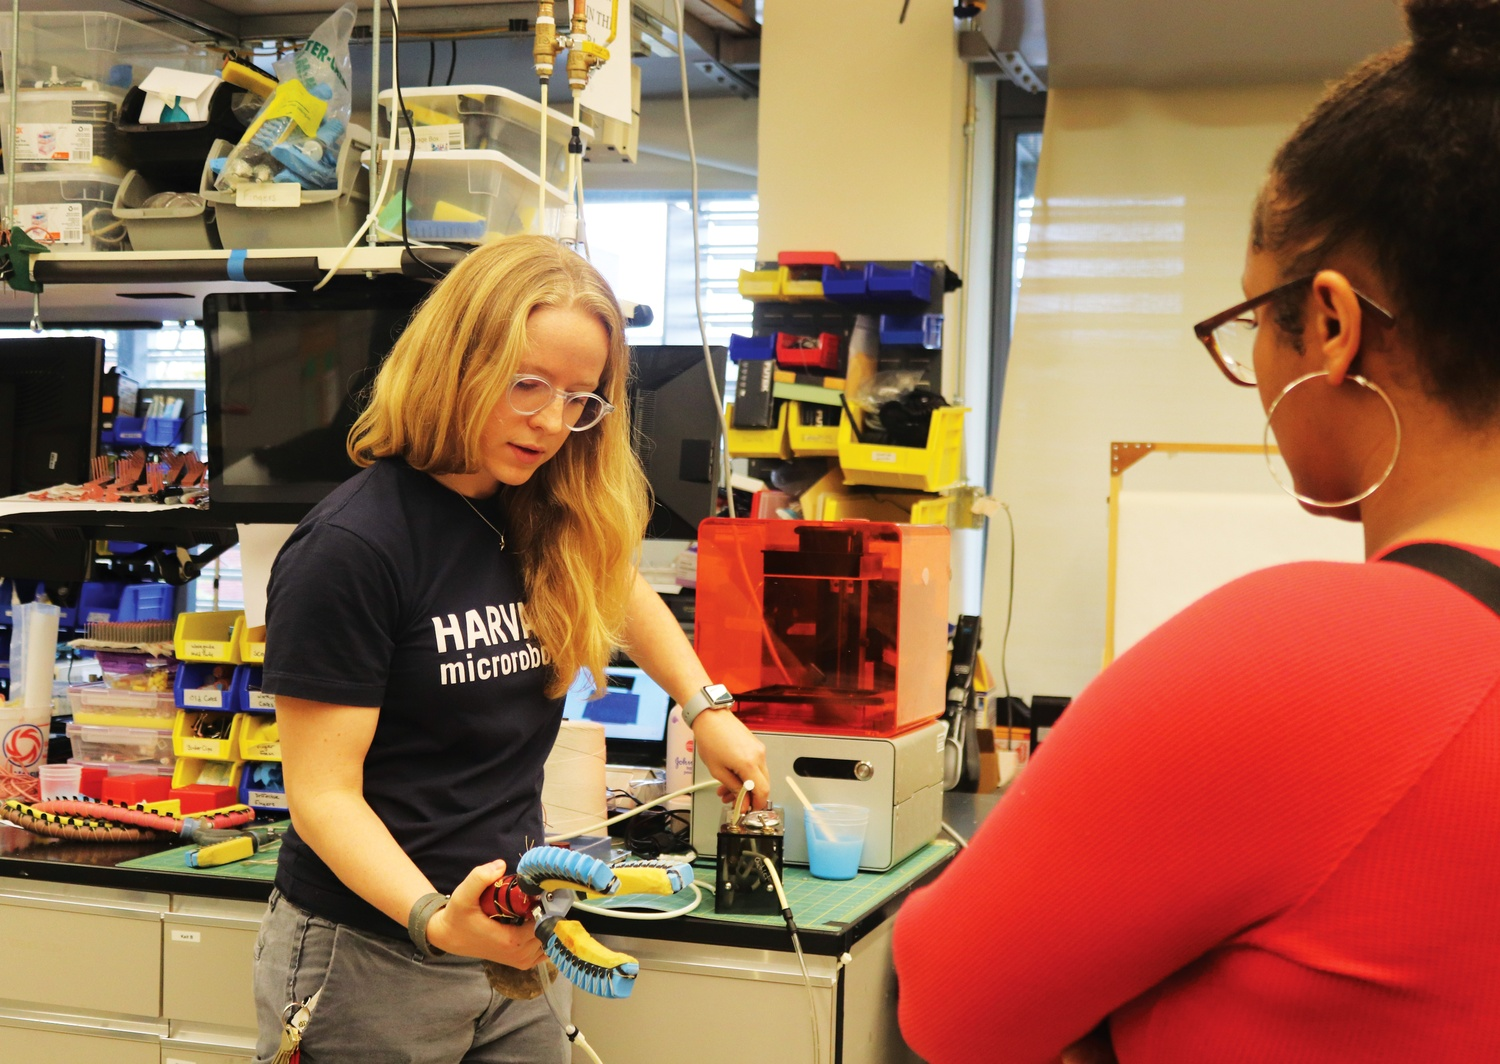 Kaitlyn P. Becker, a graduate engineering student who works on robotics, shows a group of visiting incarcerated youth how her gadgets work.